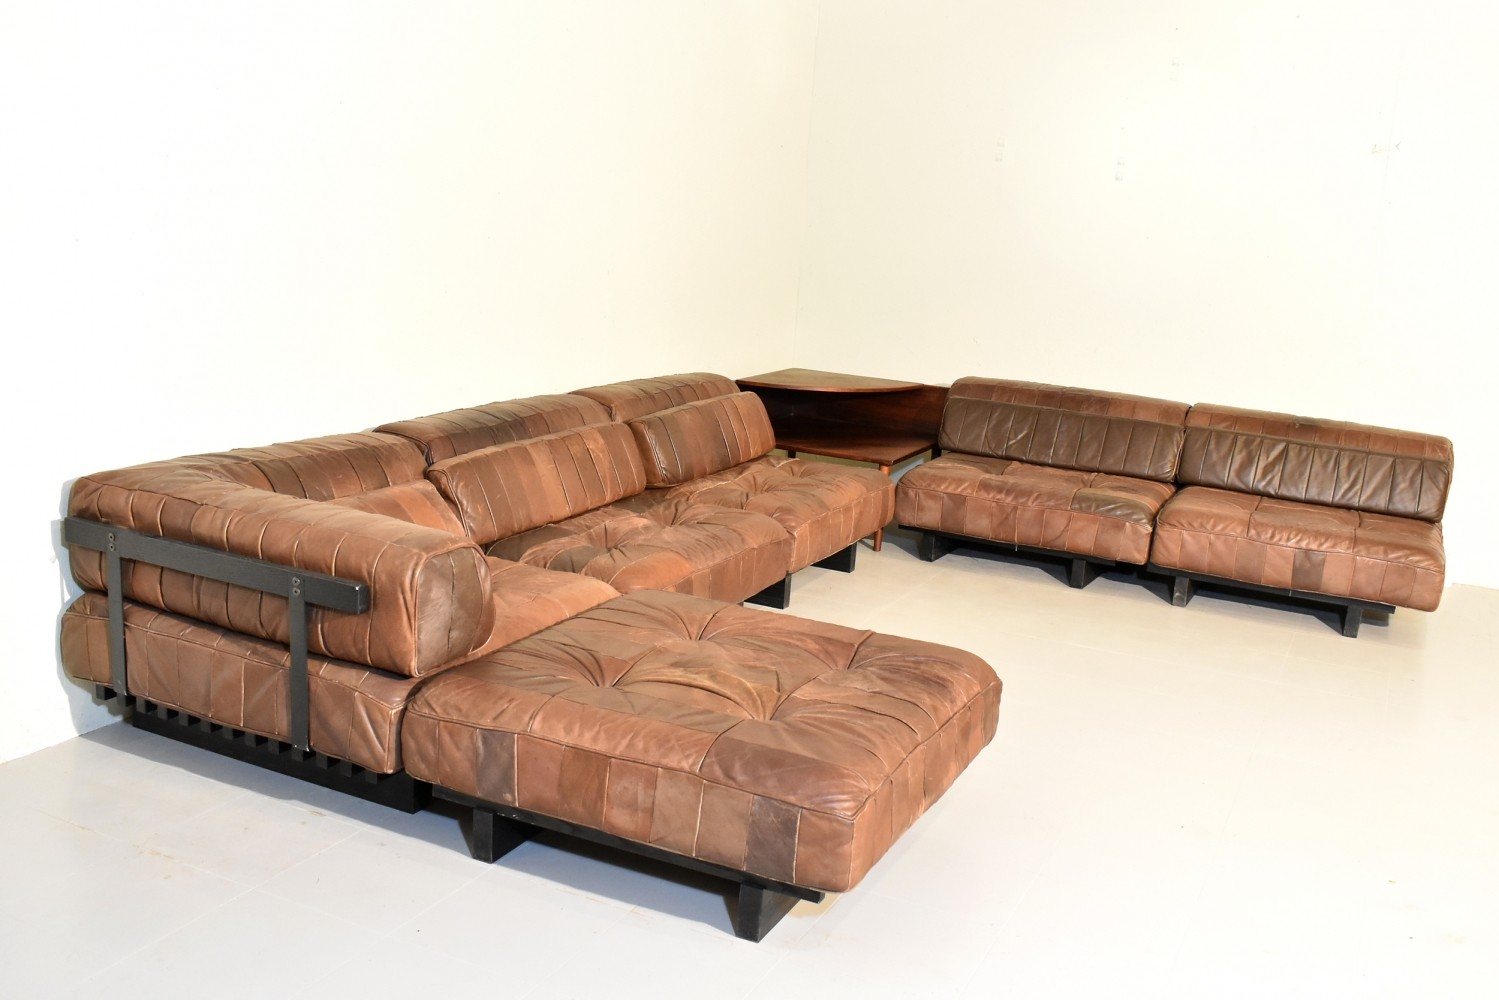 DS80 sofa by De Sede, 1980s